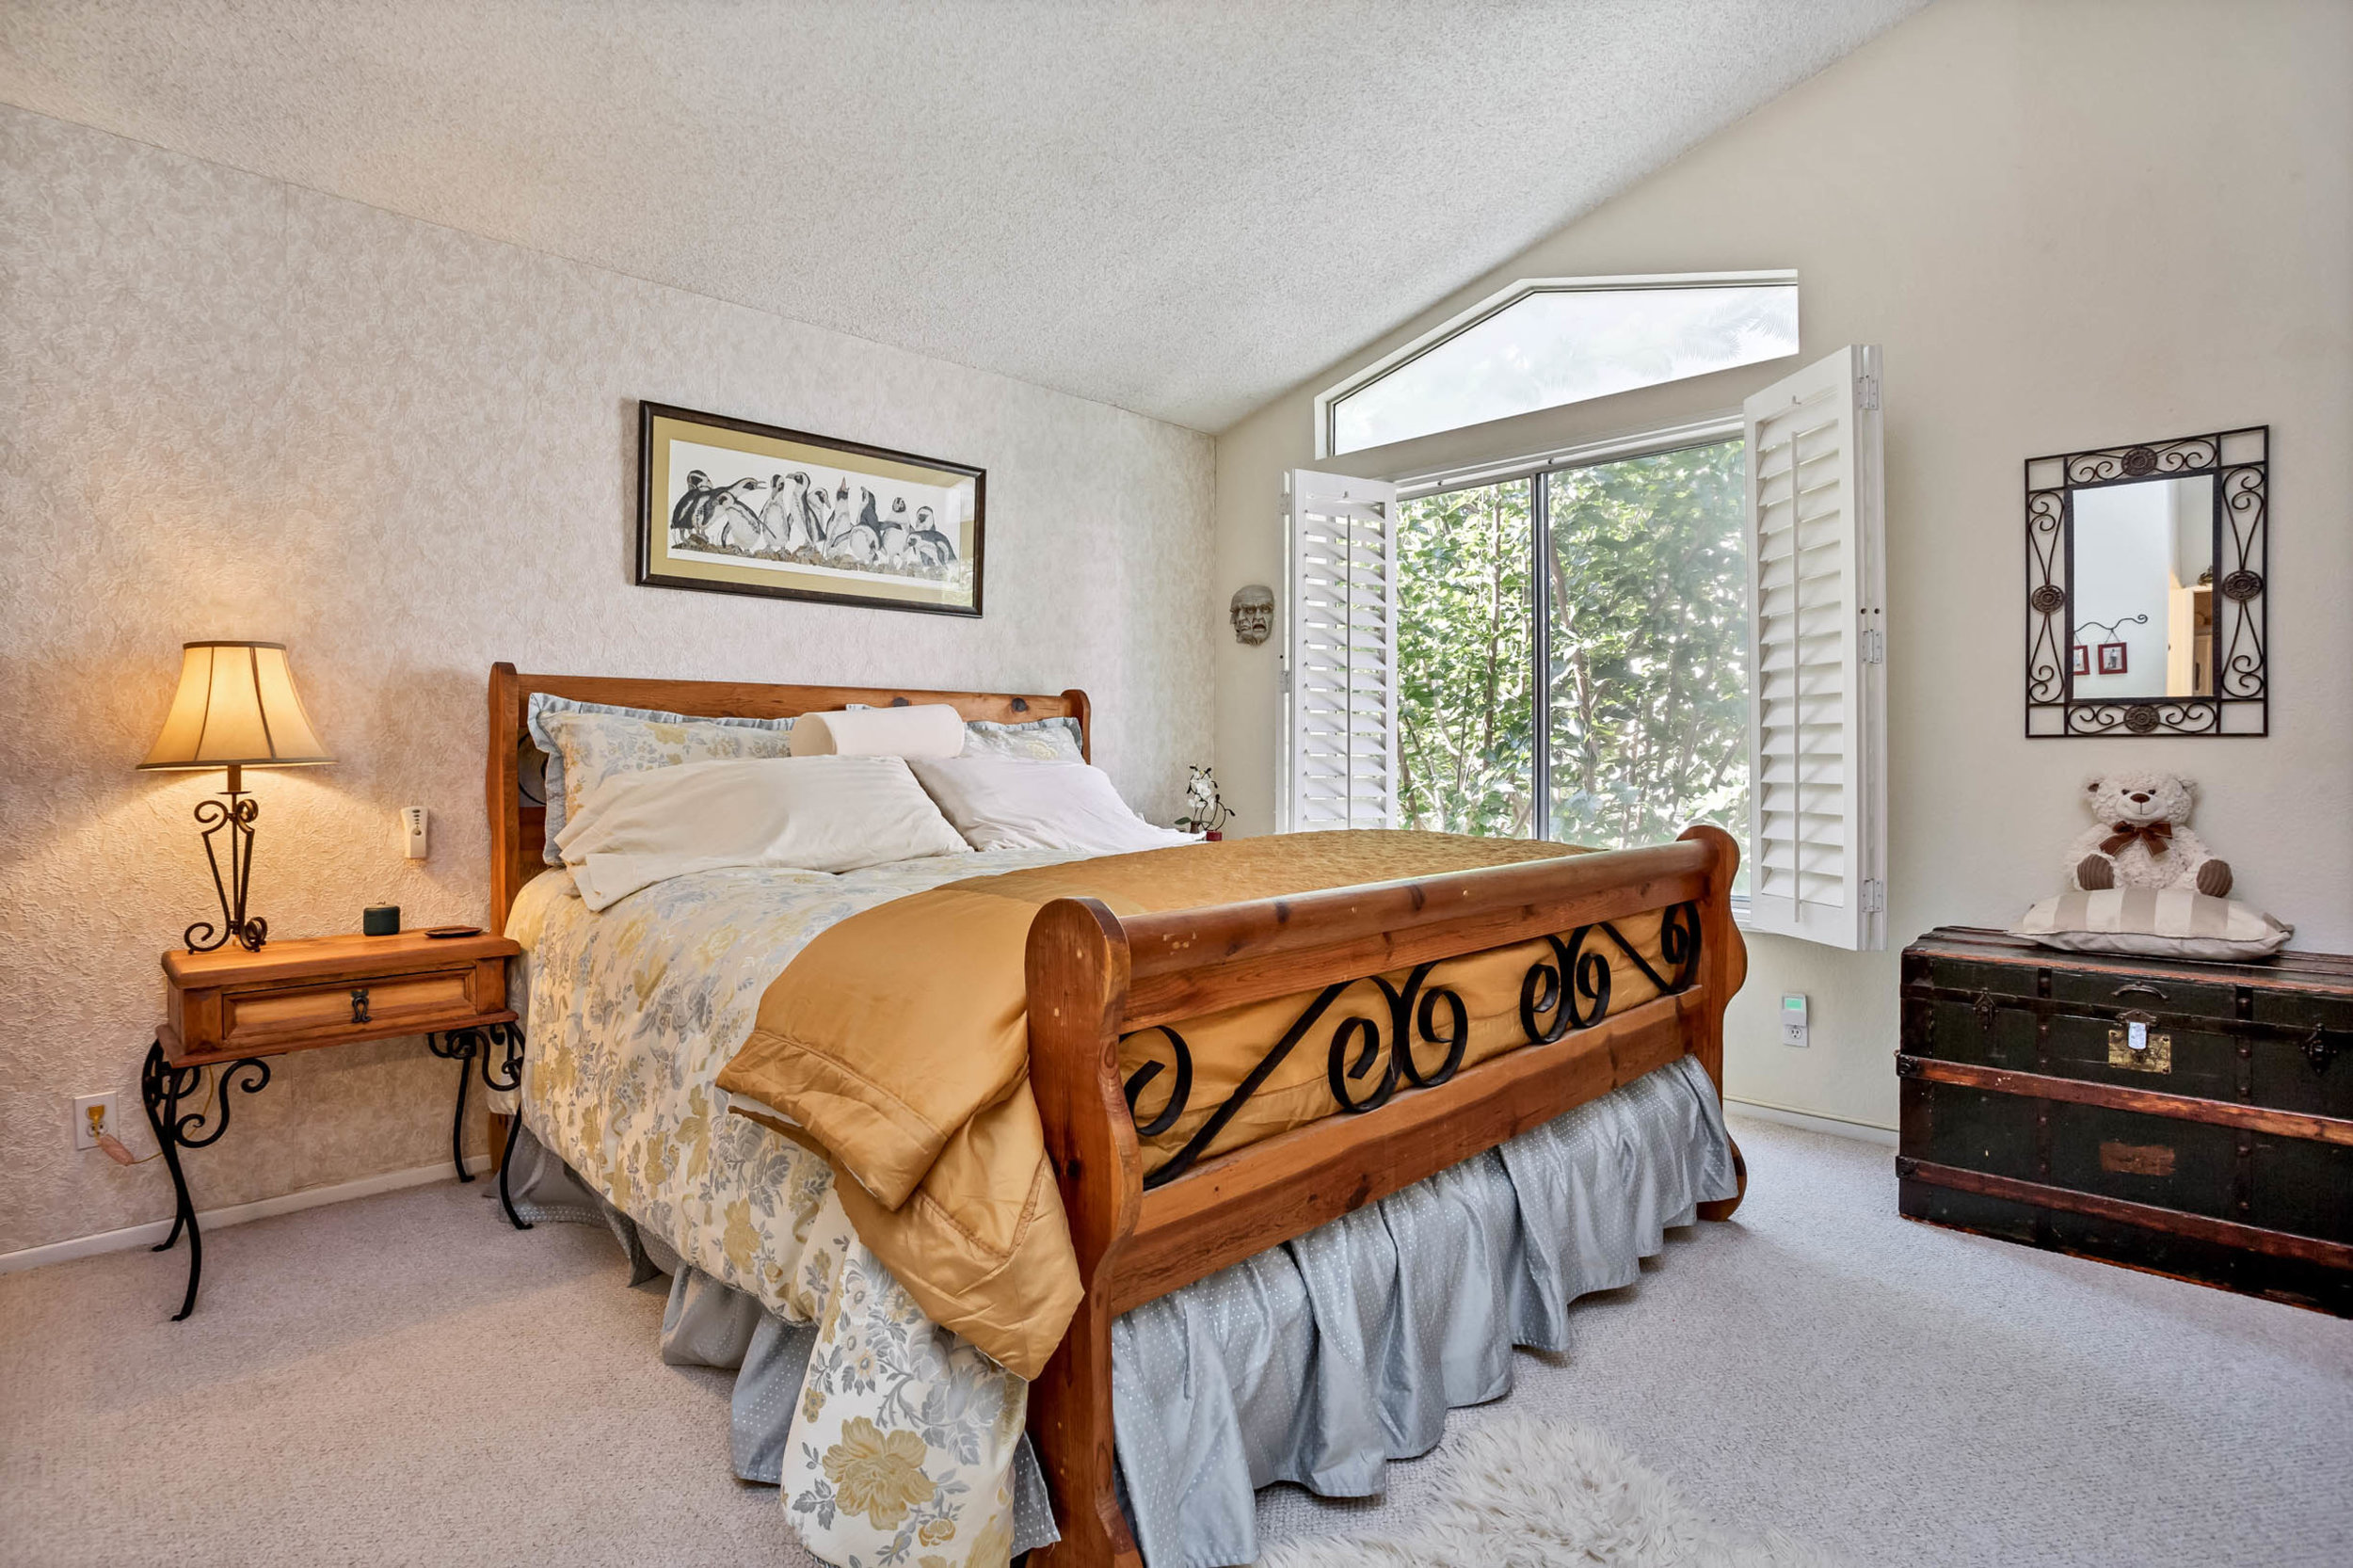 011 Master Bedroom 18 Rainwood Aliso Viejo Orange County For Sale Lease The Malibu Life Team Luxury Real Estate.jpg